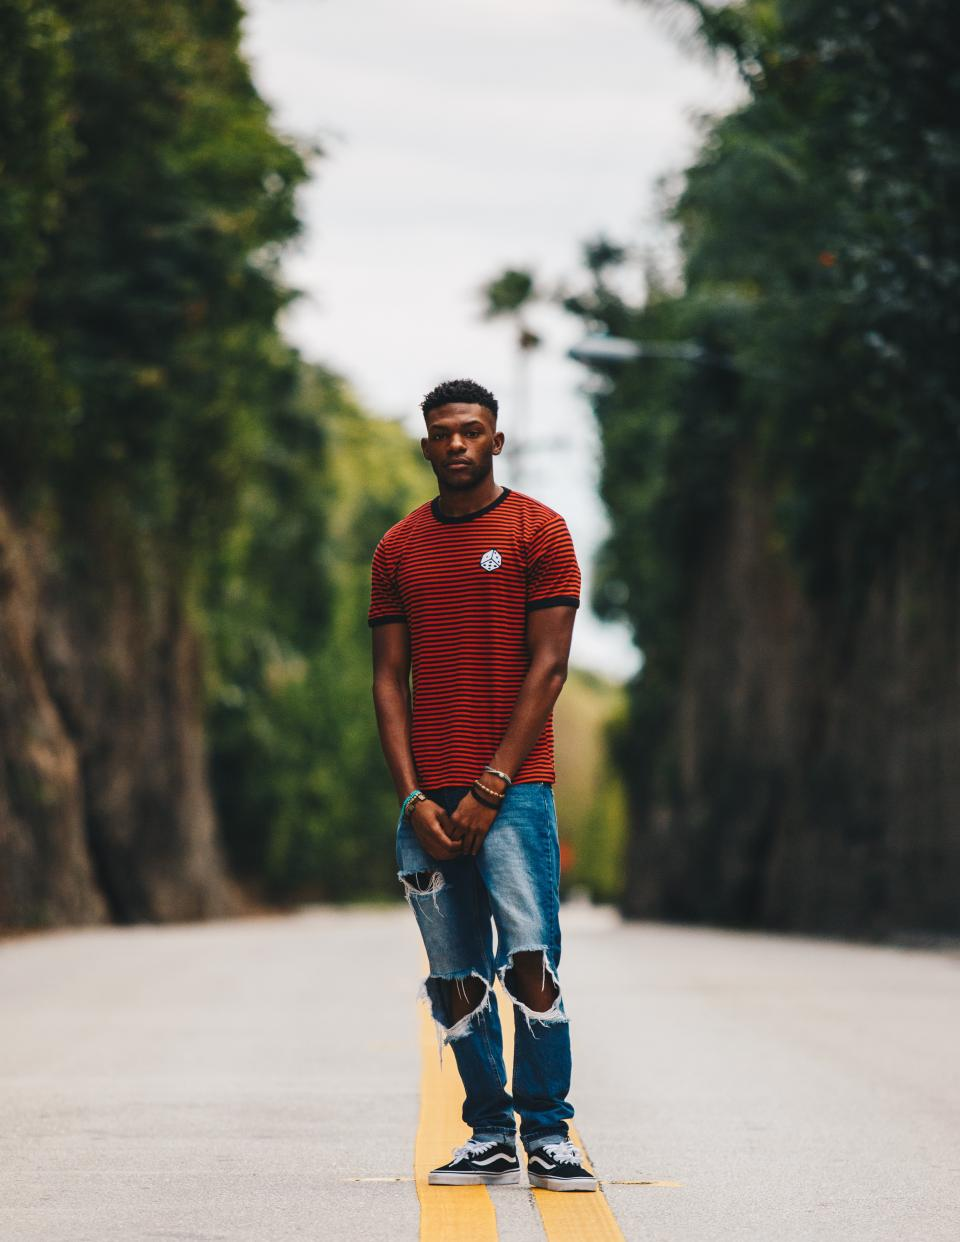 people guy man forest road bokeh ripped jeans trees trunk path bracelet red black african american curly lane